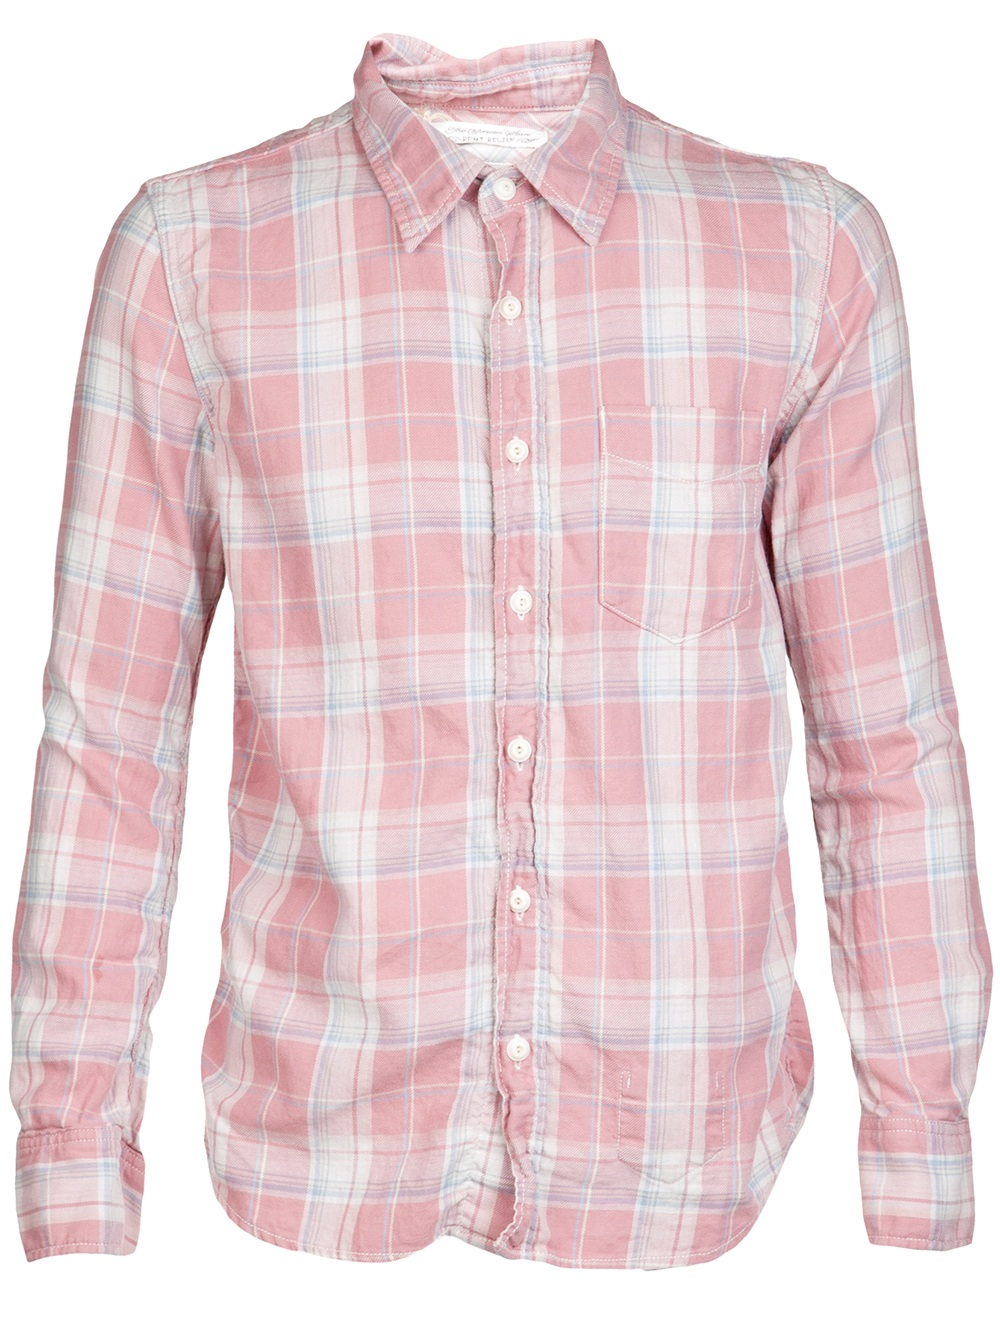 remi relief plaid cotton shirt in pink for men lyst. Black Bedroom Furniture Sets. Home Design Ideas